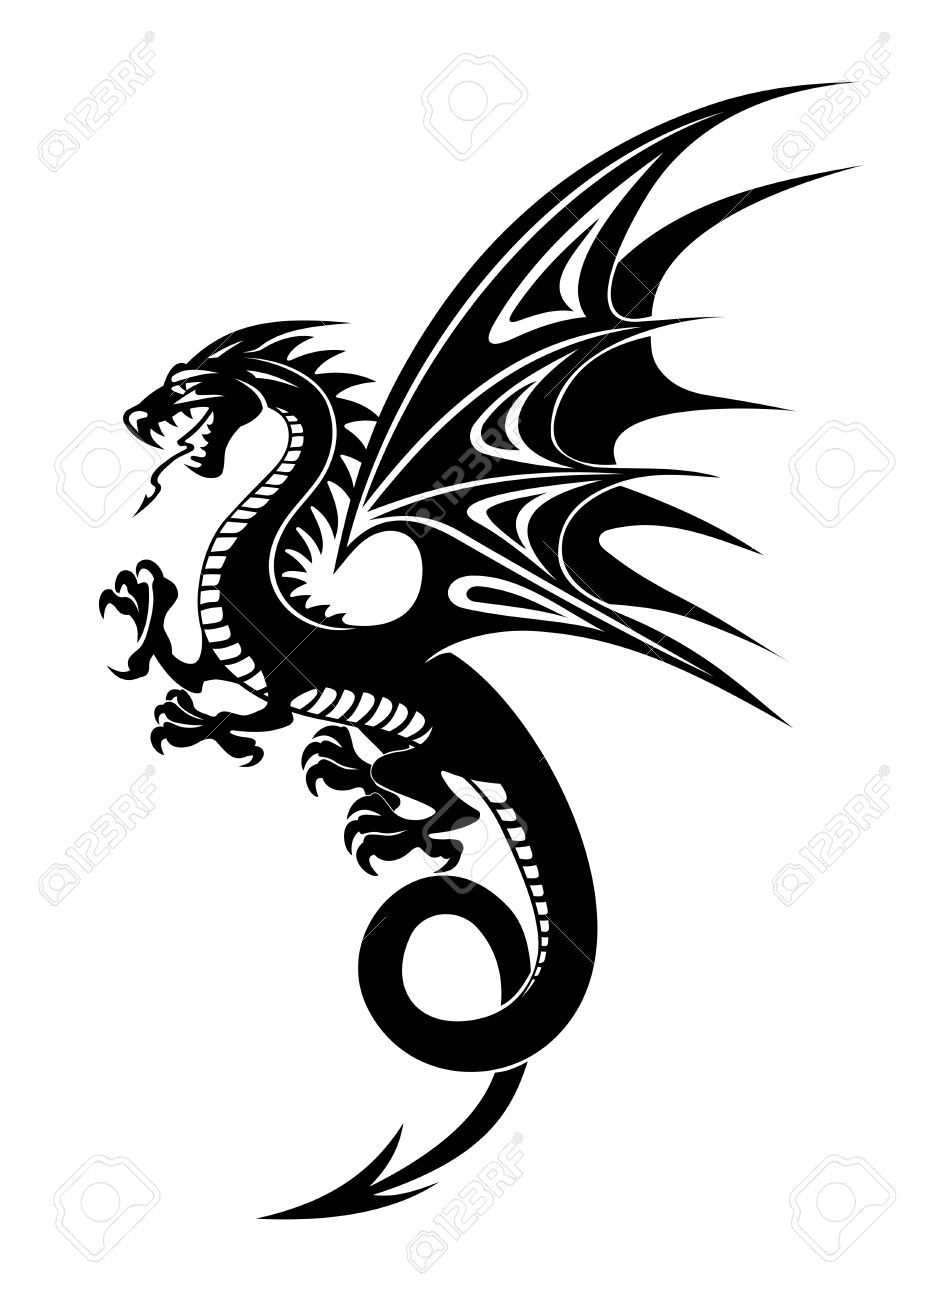 dragon stock photos royalty free dragon images